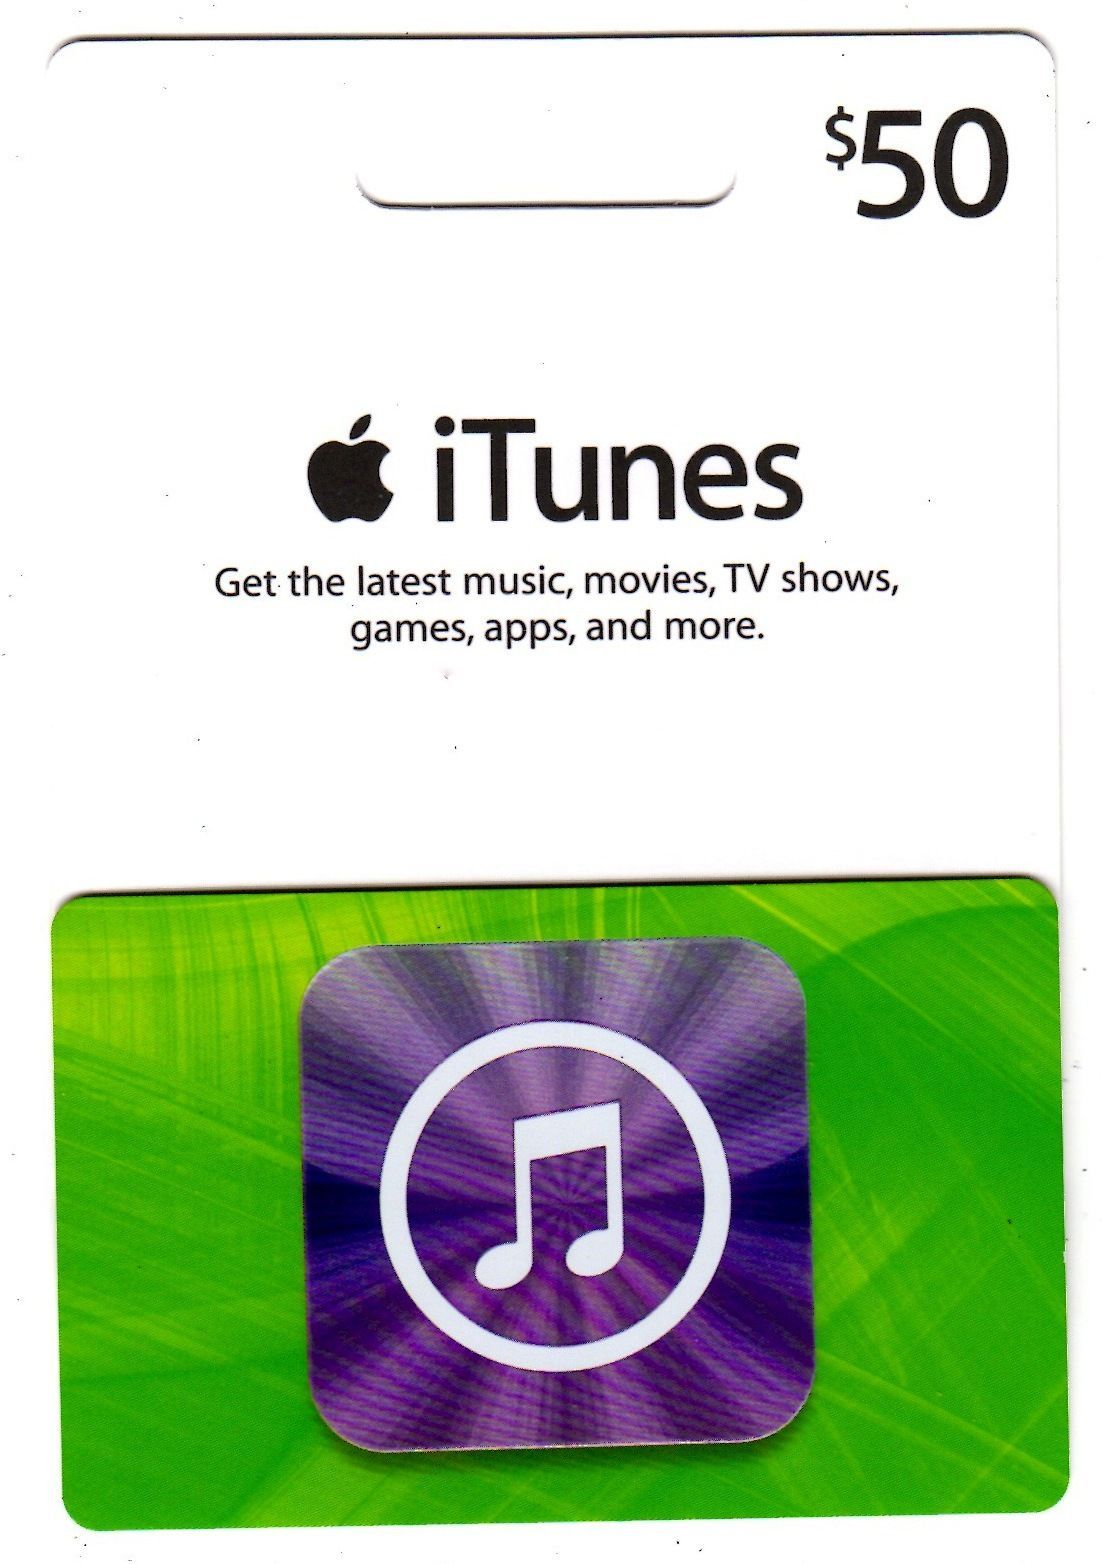 Httpsearchpromocodesub50 Us Apple Itunes Gift Card